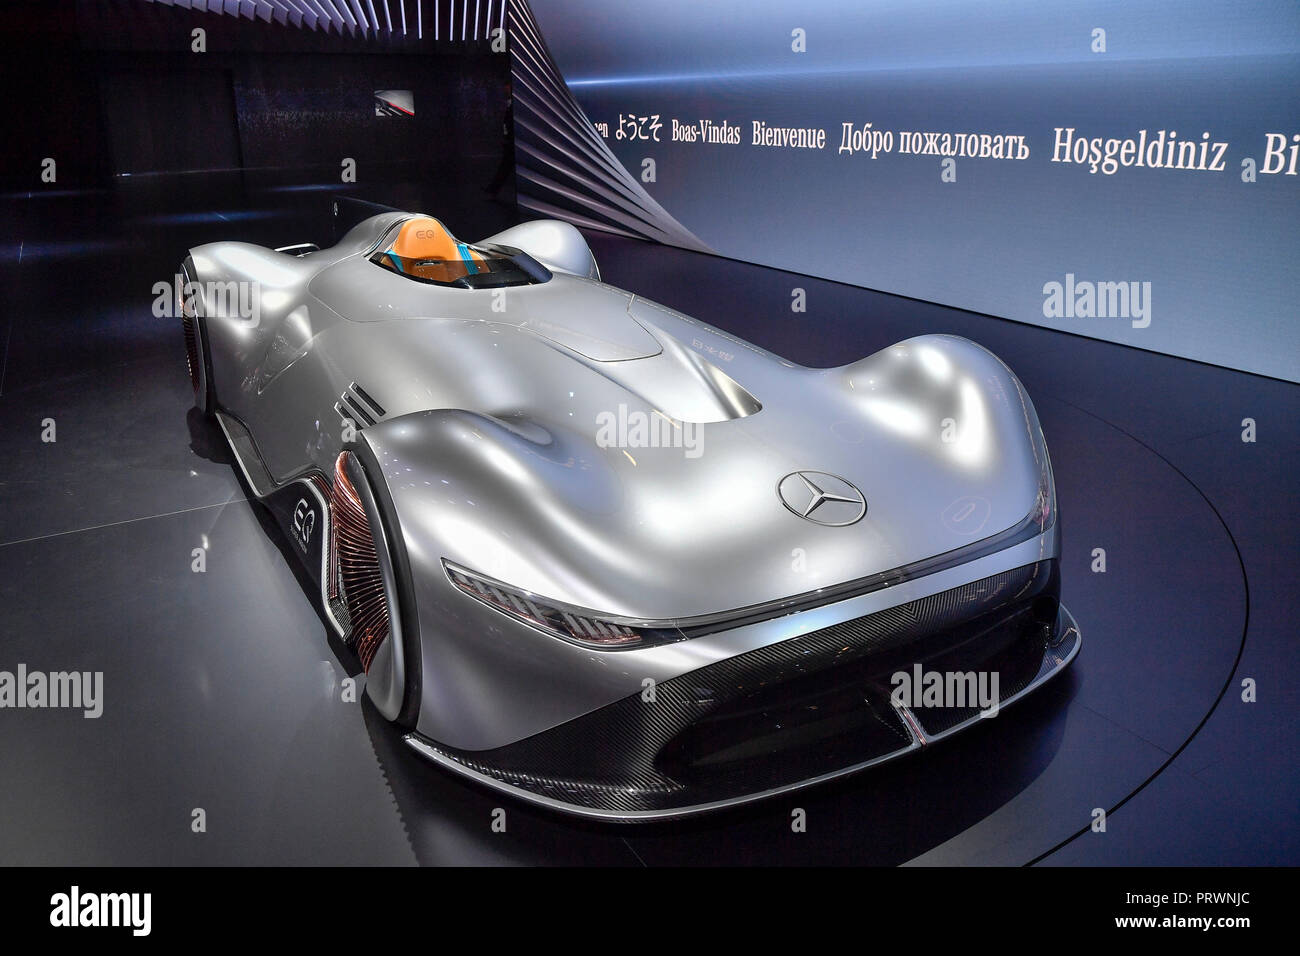 Paris. 2nd Oct, 2018. Photo taken on Oct. 2, 2018 shows a Benz's concept car, EQ Silver Arrow, during the Paris Motor Show in Paris, France. Credit: Chen Yichen/Xinhua/Alamy Live News Stock Photo